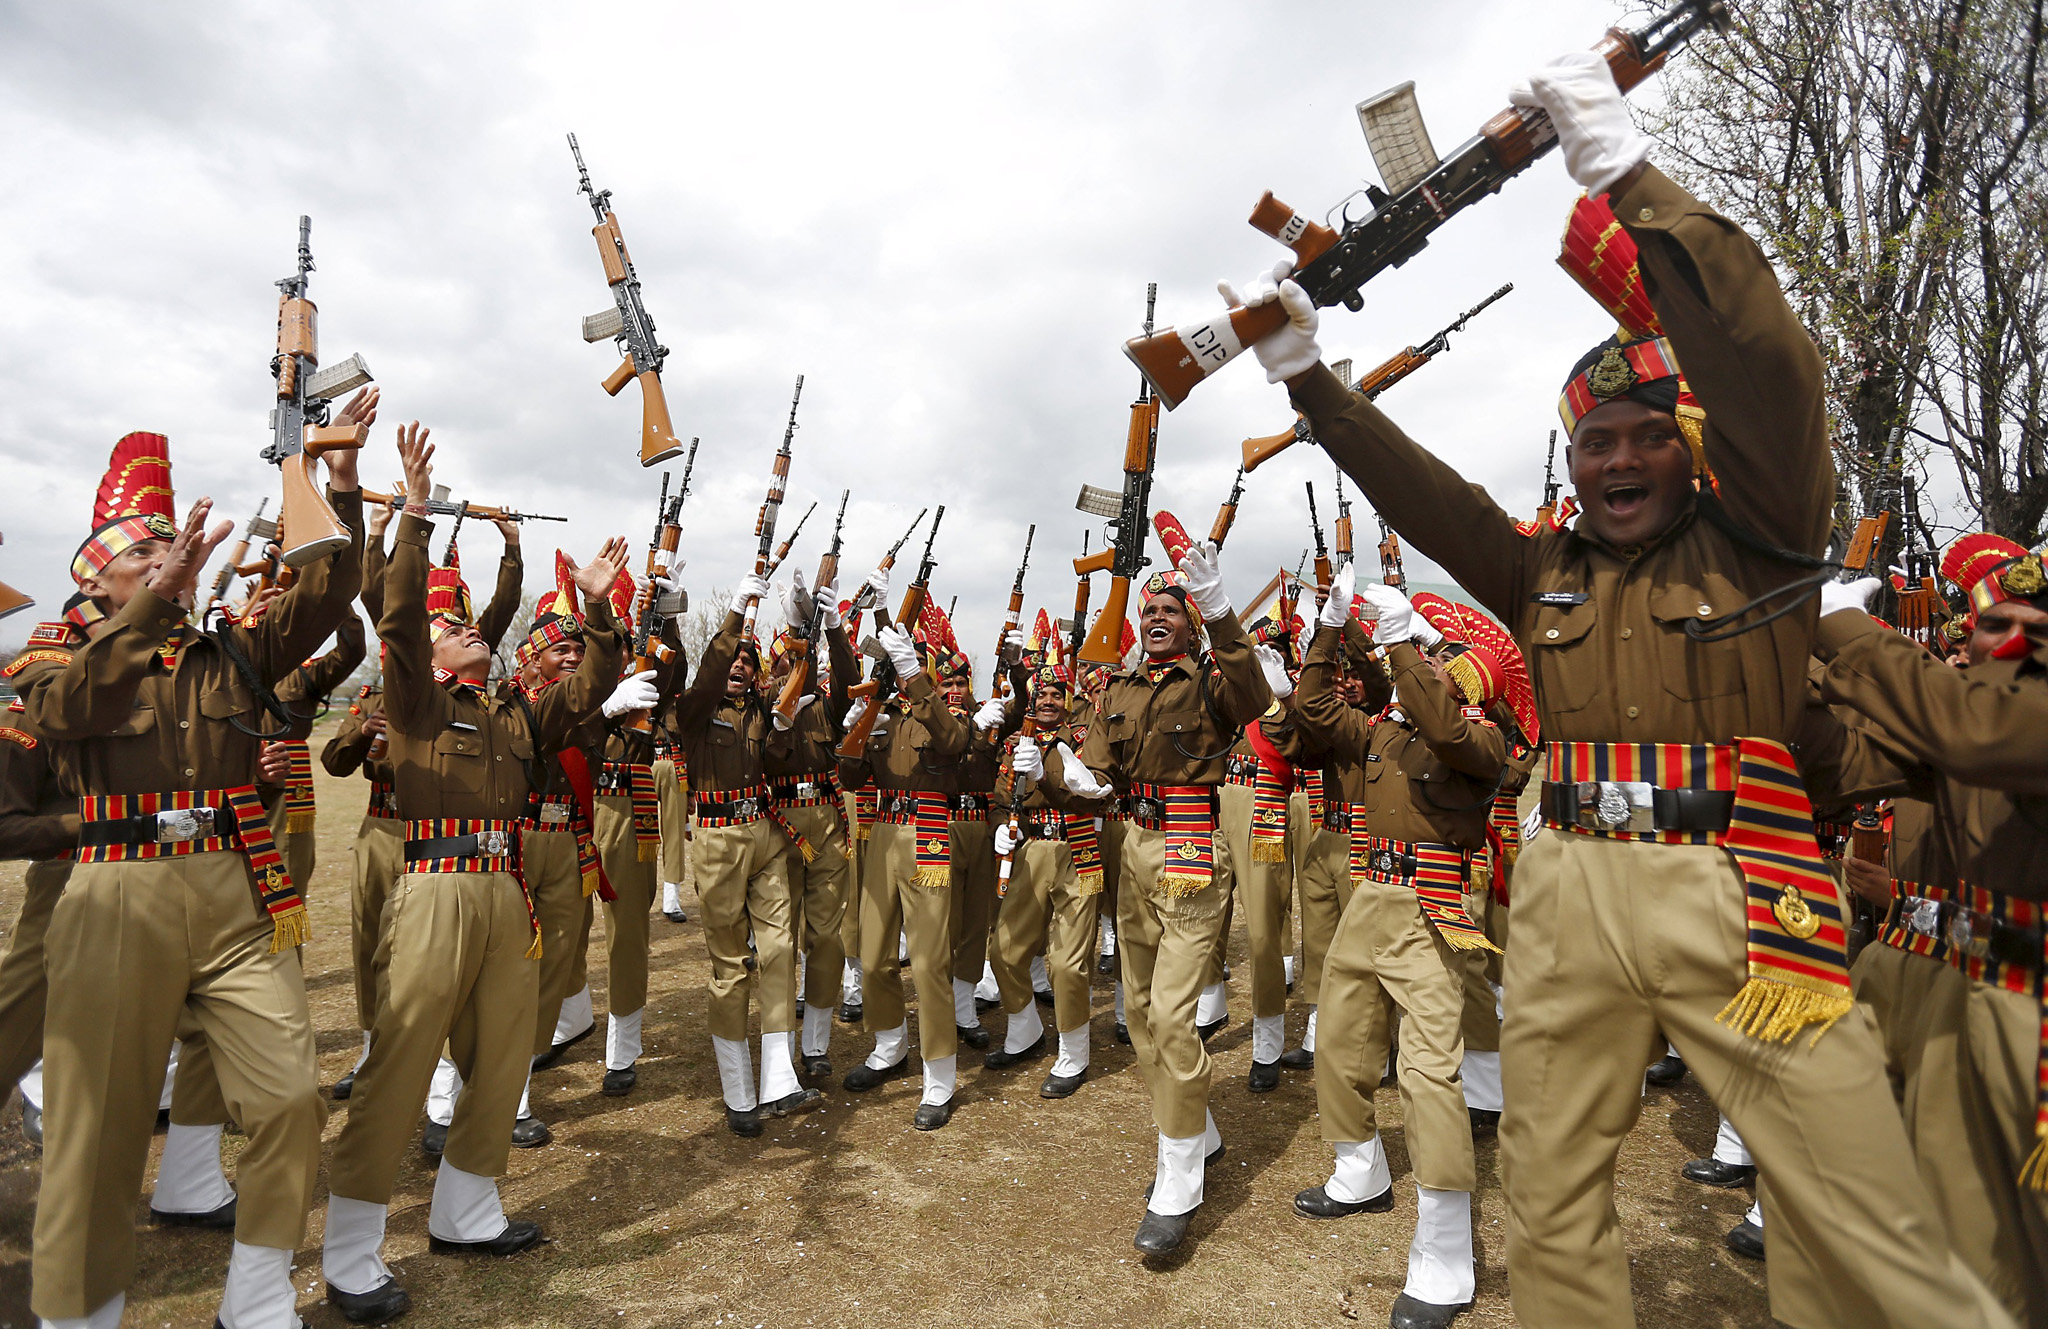 Indian Border Security Force personnel toss their rifles to celebrate after their passing-out parade in Humhama...Indian Border Security Force (BSF) personnel toss their rifles to celebrate after their passing-out parade in Humhama on the outskirts of Srinagar March 14, 2016. A total of 130 recruits on Monday were formally inducted into the BSF, an Indian paramilitary force mostly deployed along the borders, after completing 44 weeks of training, a BSF media release said. REUTERS/Danish Ismail